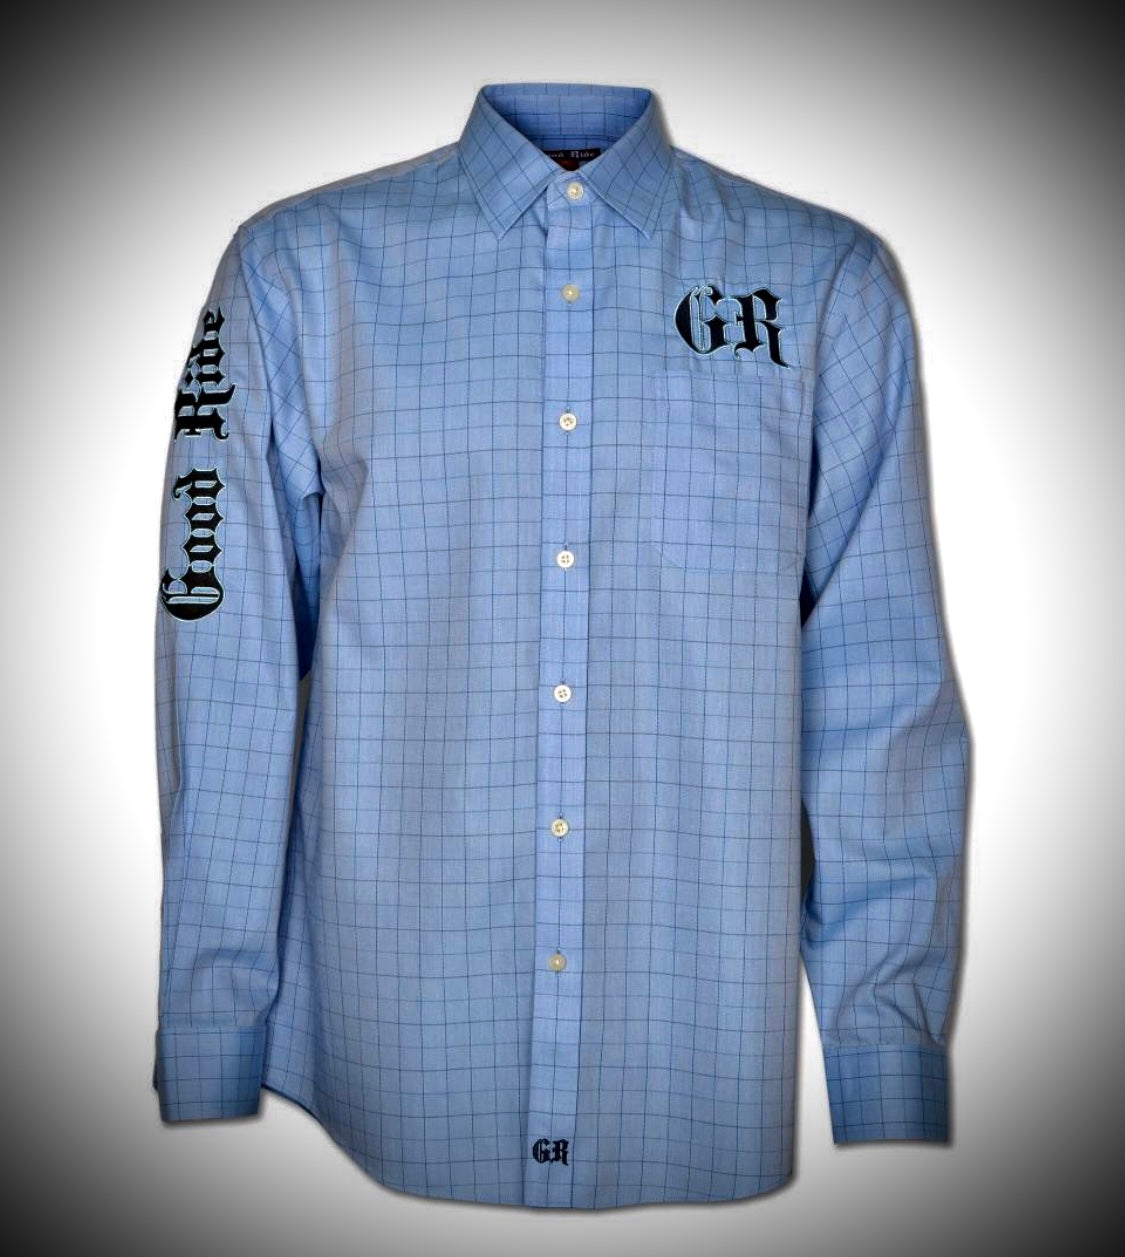 Men's Light Blue Window Pane Show Shirt / Black & Light Blue GR